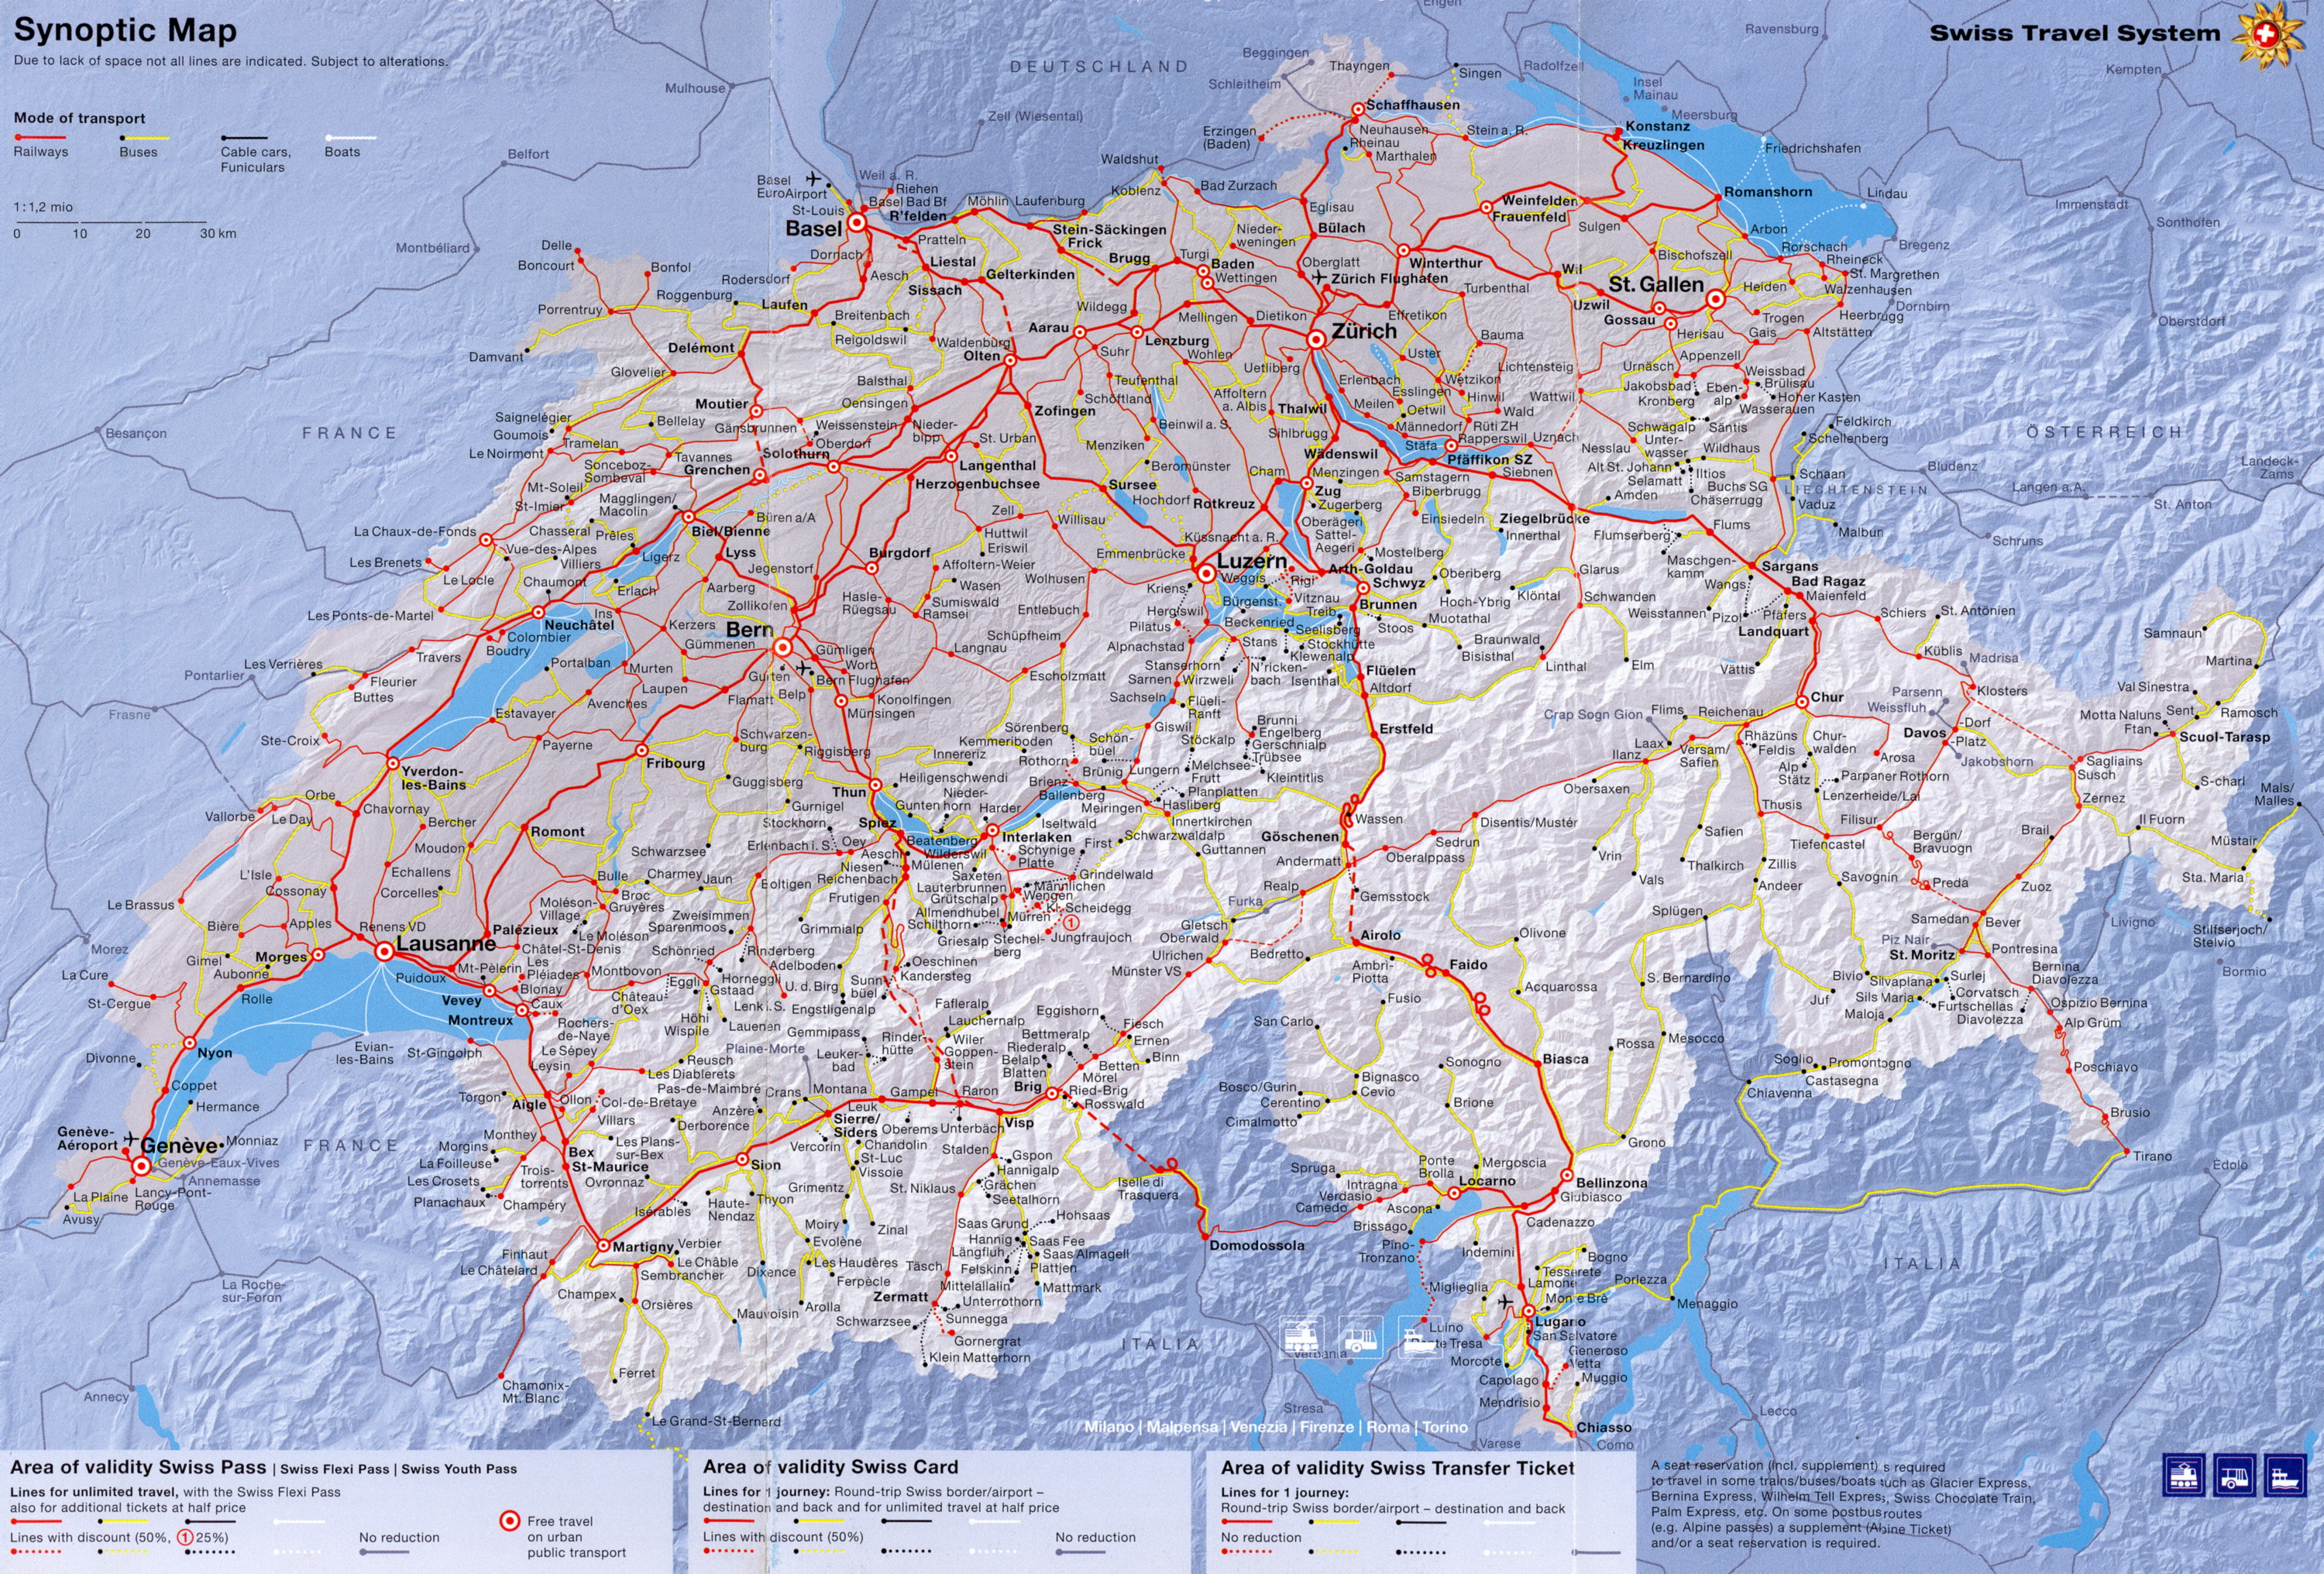 Travel System – Swiss Travel System Map